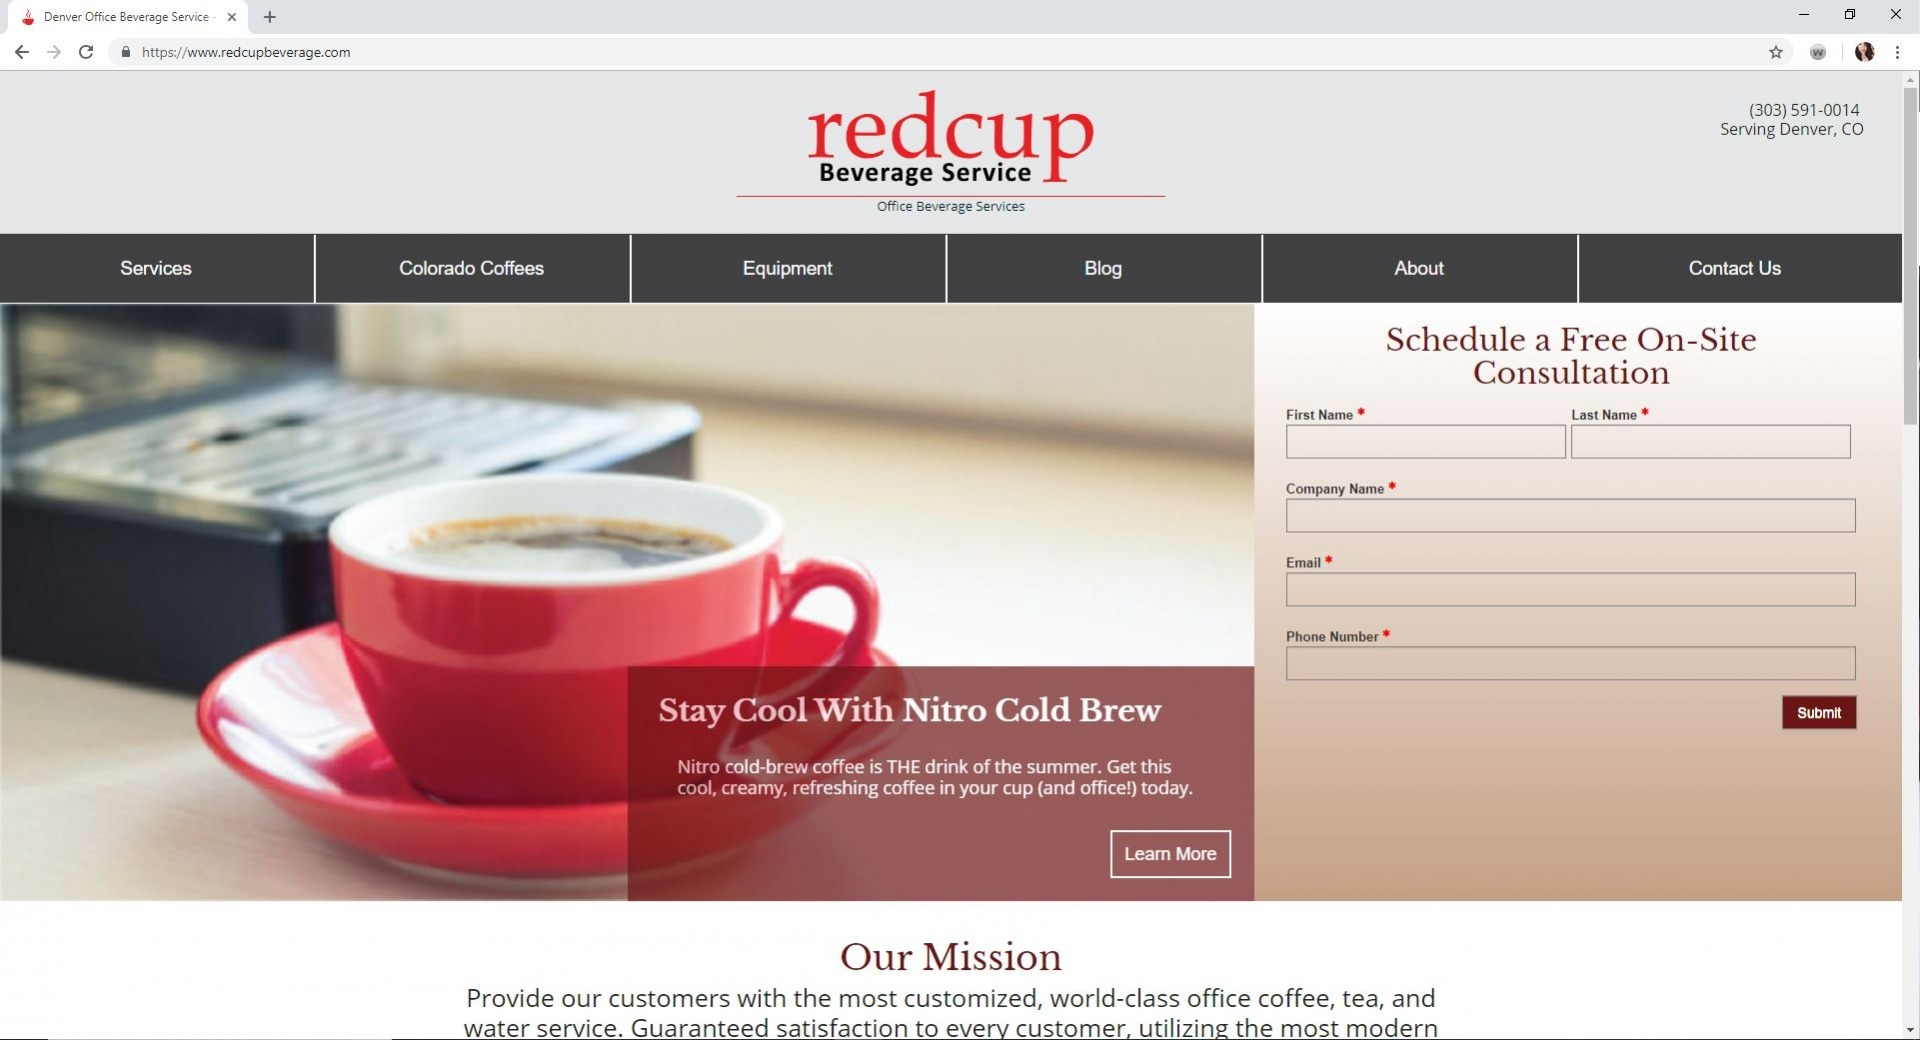 redcup Beverage Service Website